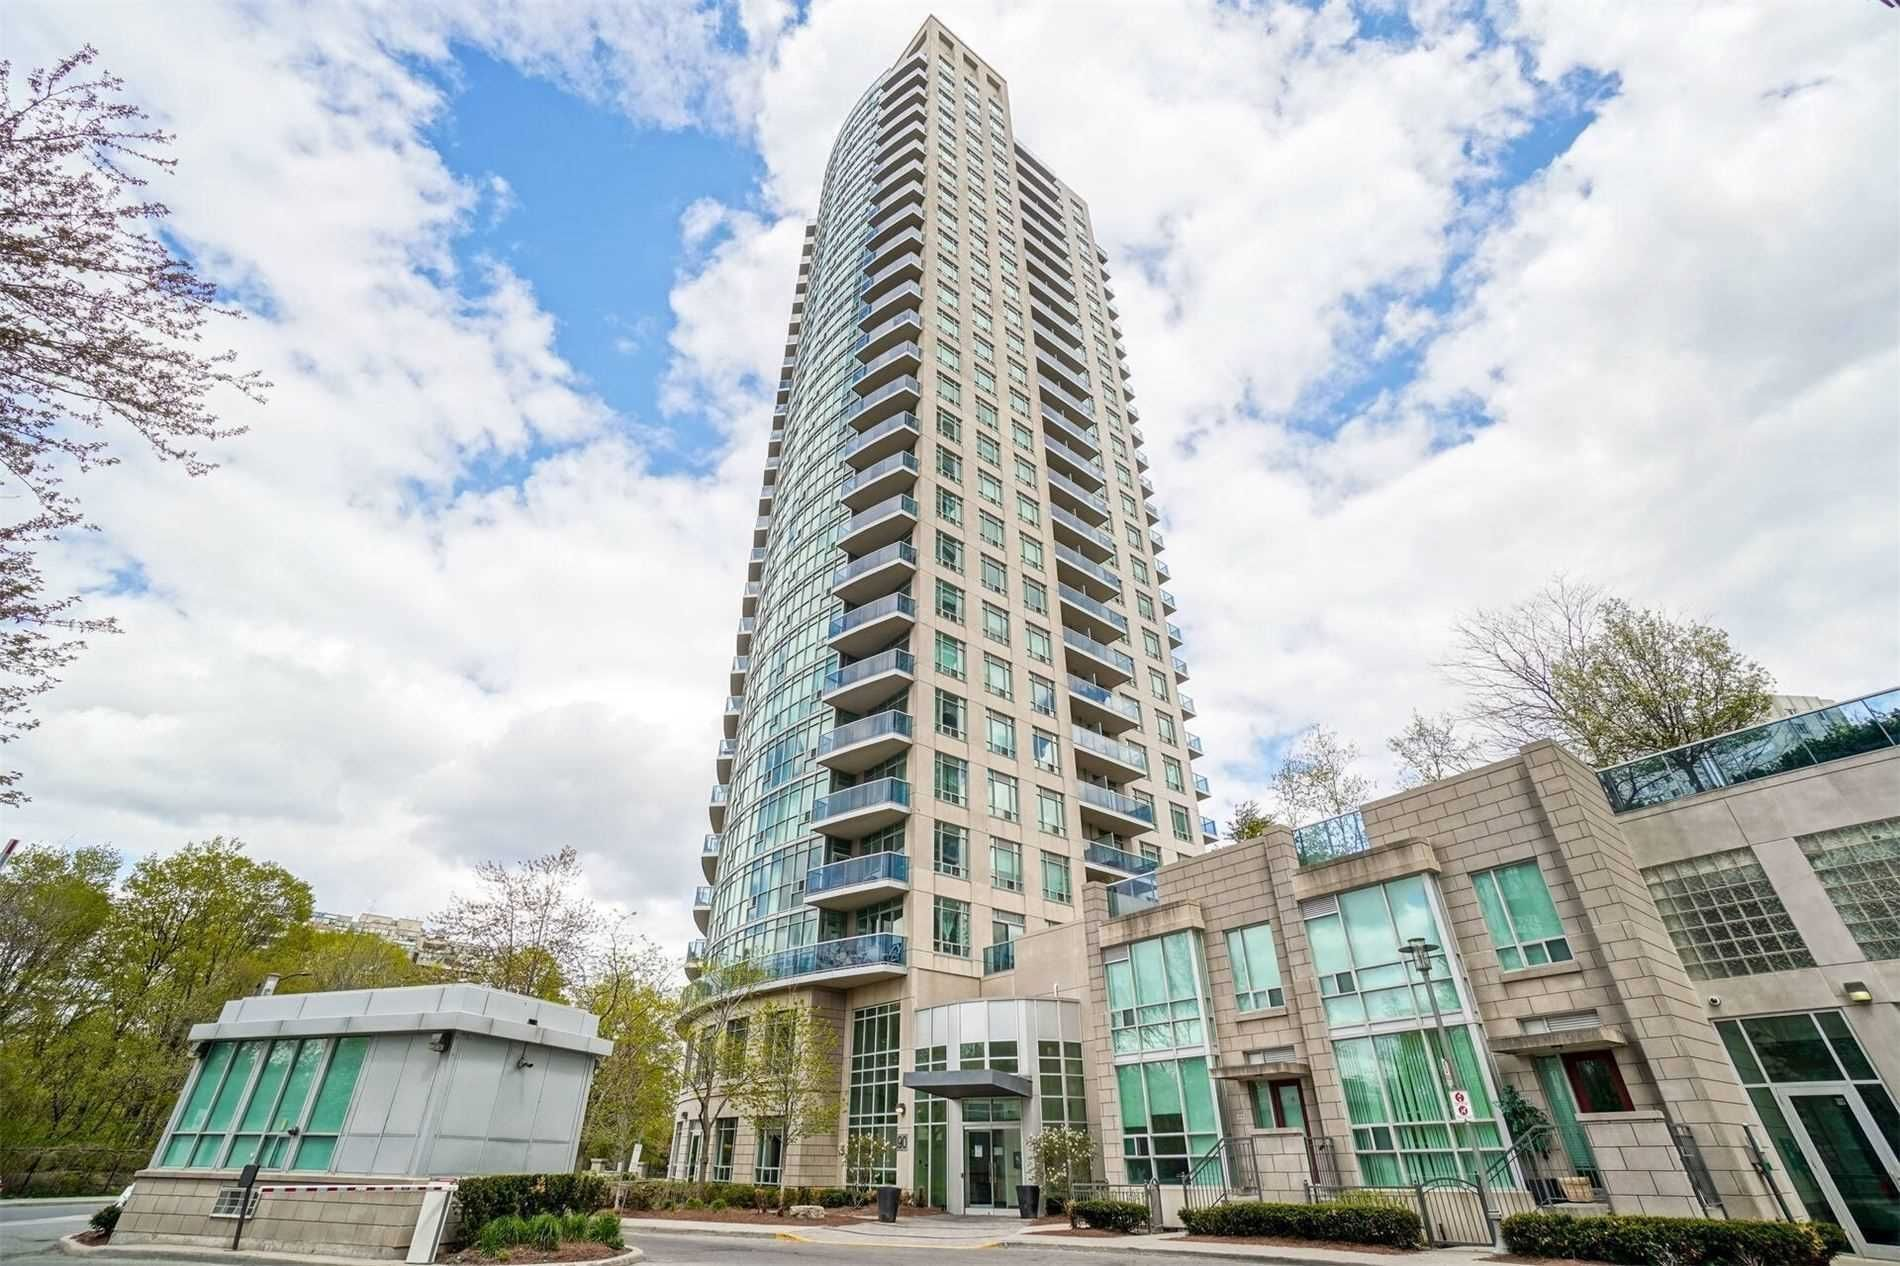 90 Absolute Ave, unit 505 for sale in Toronto - image #1